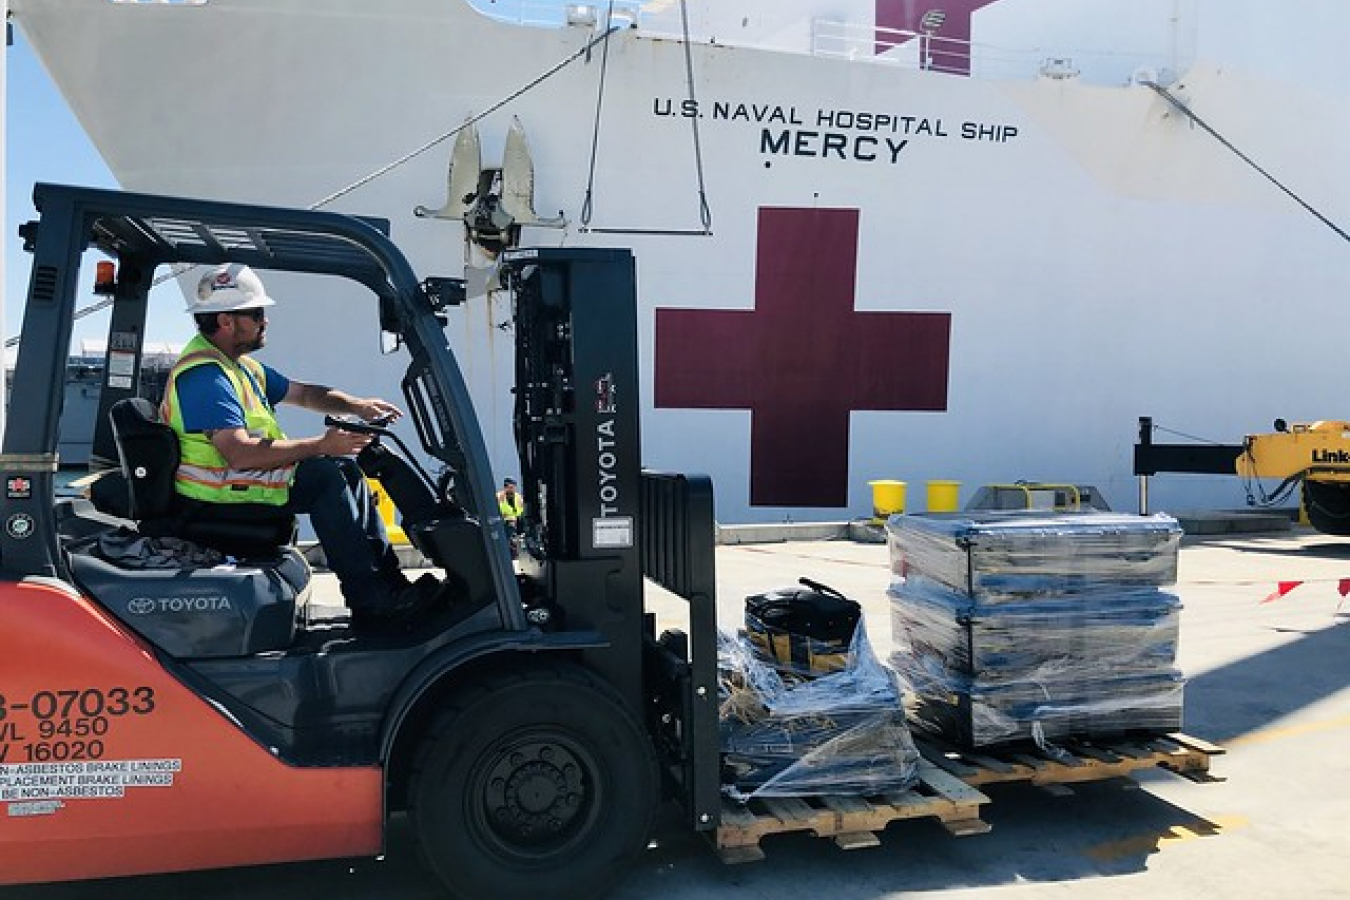 USNS Mercy (T-AH 19) takes on supplies for COVID-19 support.